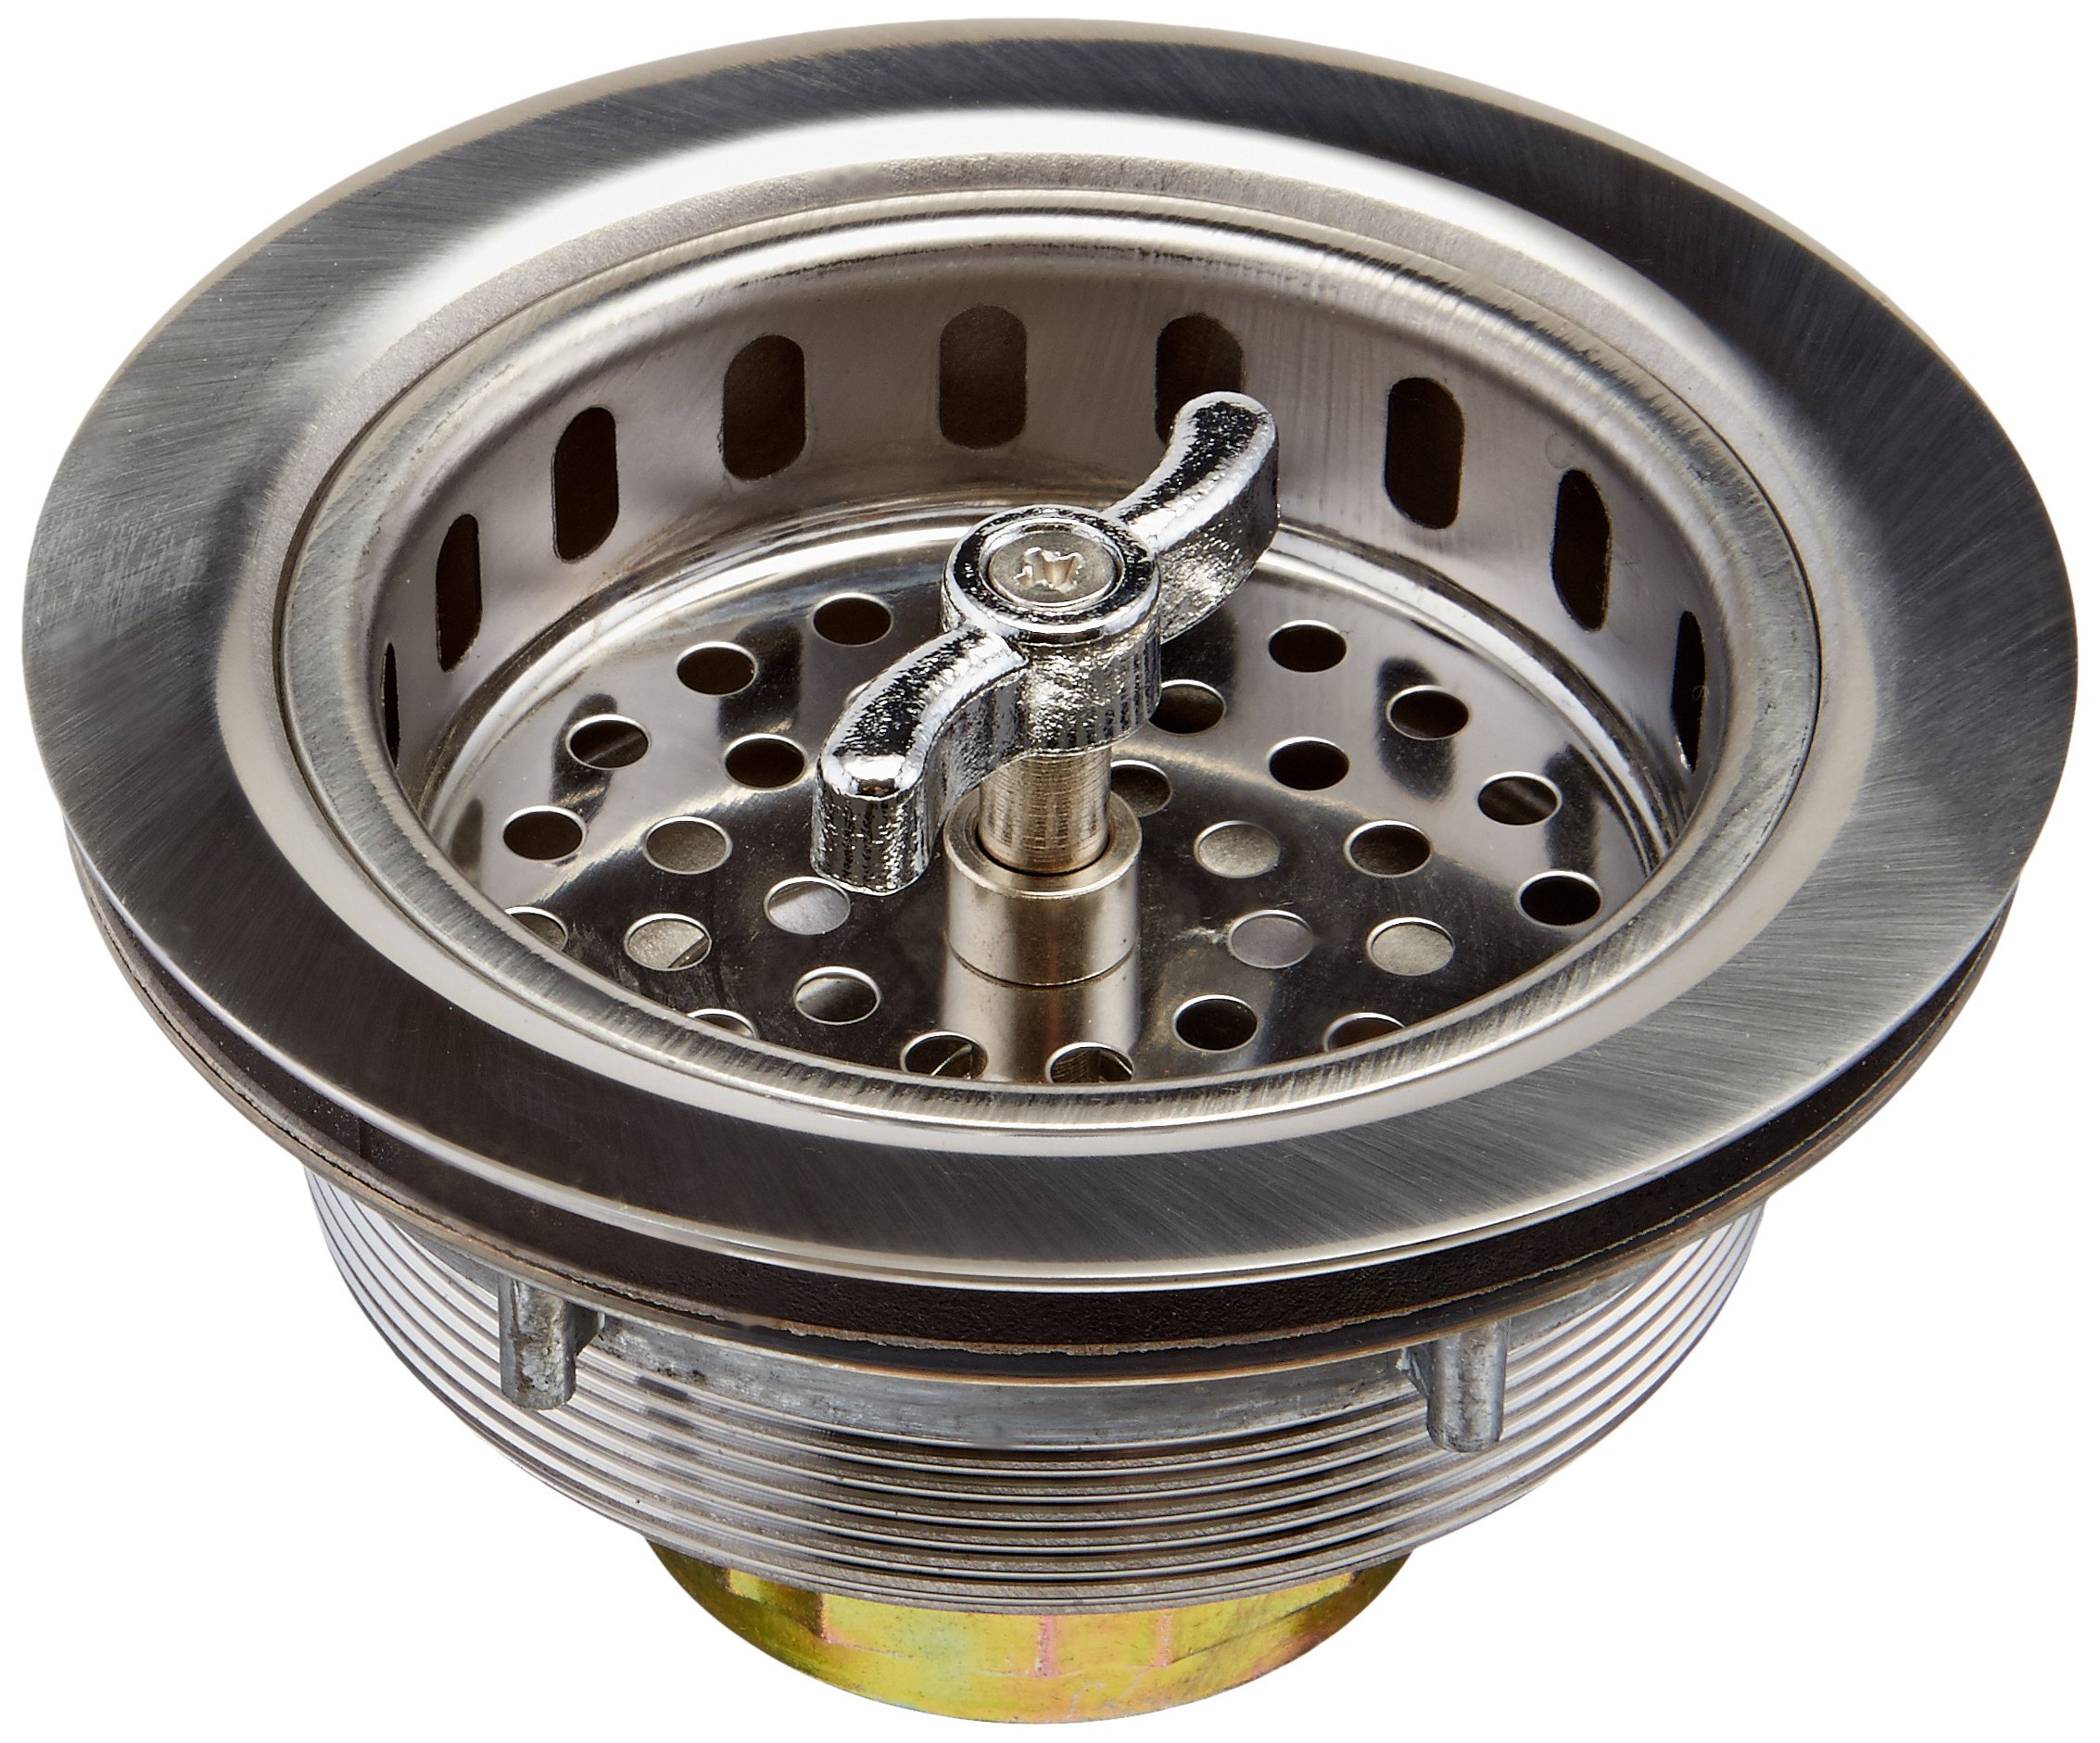 Keeney 1433SS 3-1/2-in dia Twist and Lock Sink Strainer with Basket, Stainless Steel